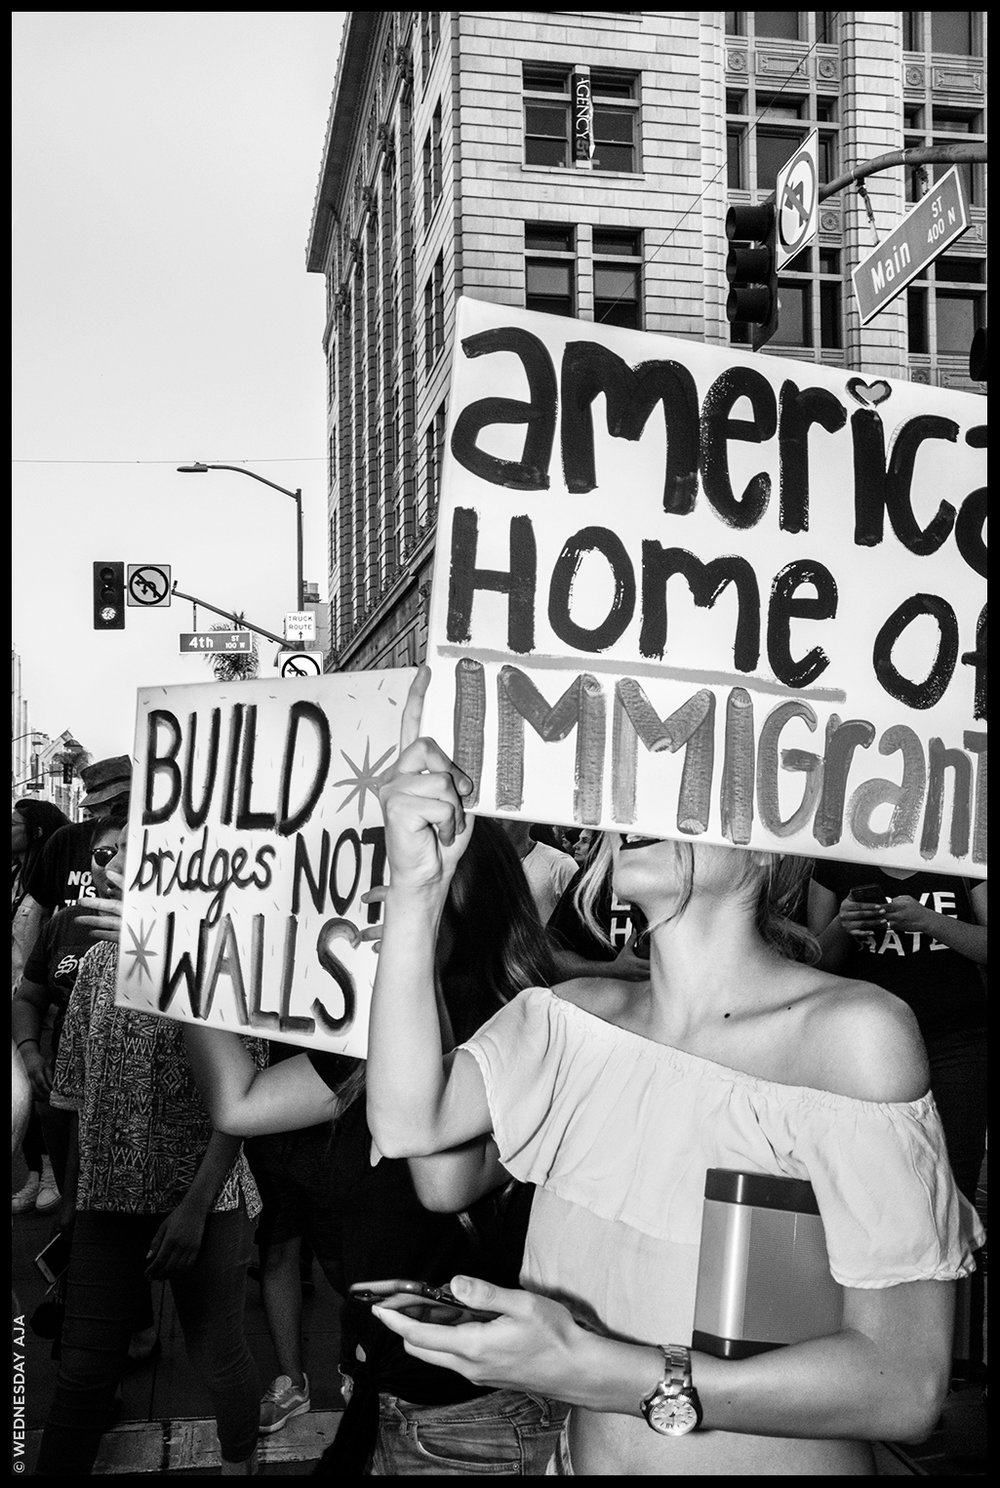 DACA  (Deferred Action for Childhood Arrivals) Protest in support of the program // Santa Ana, CA Sept 5, 2017